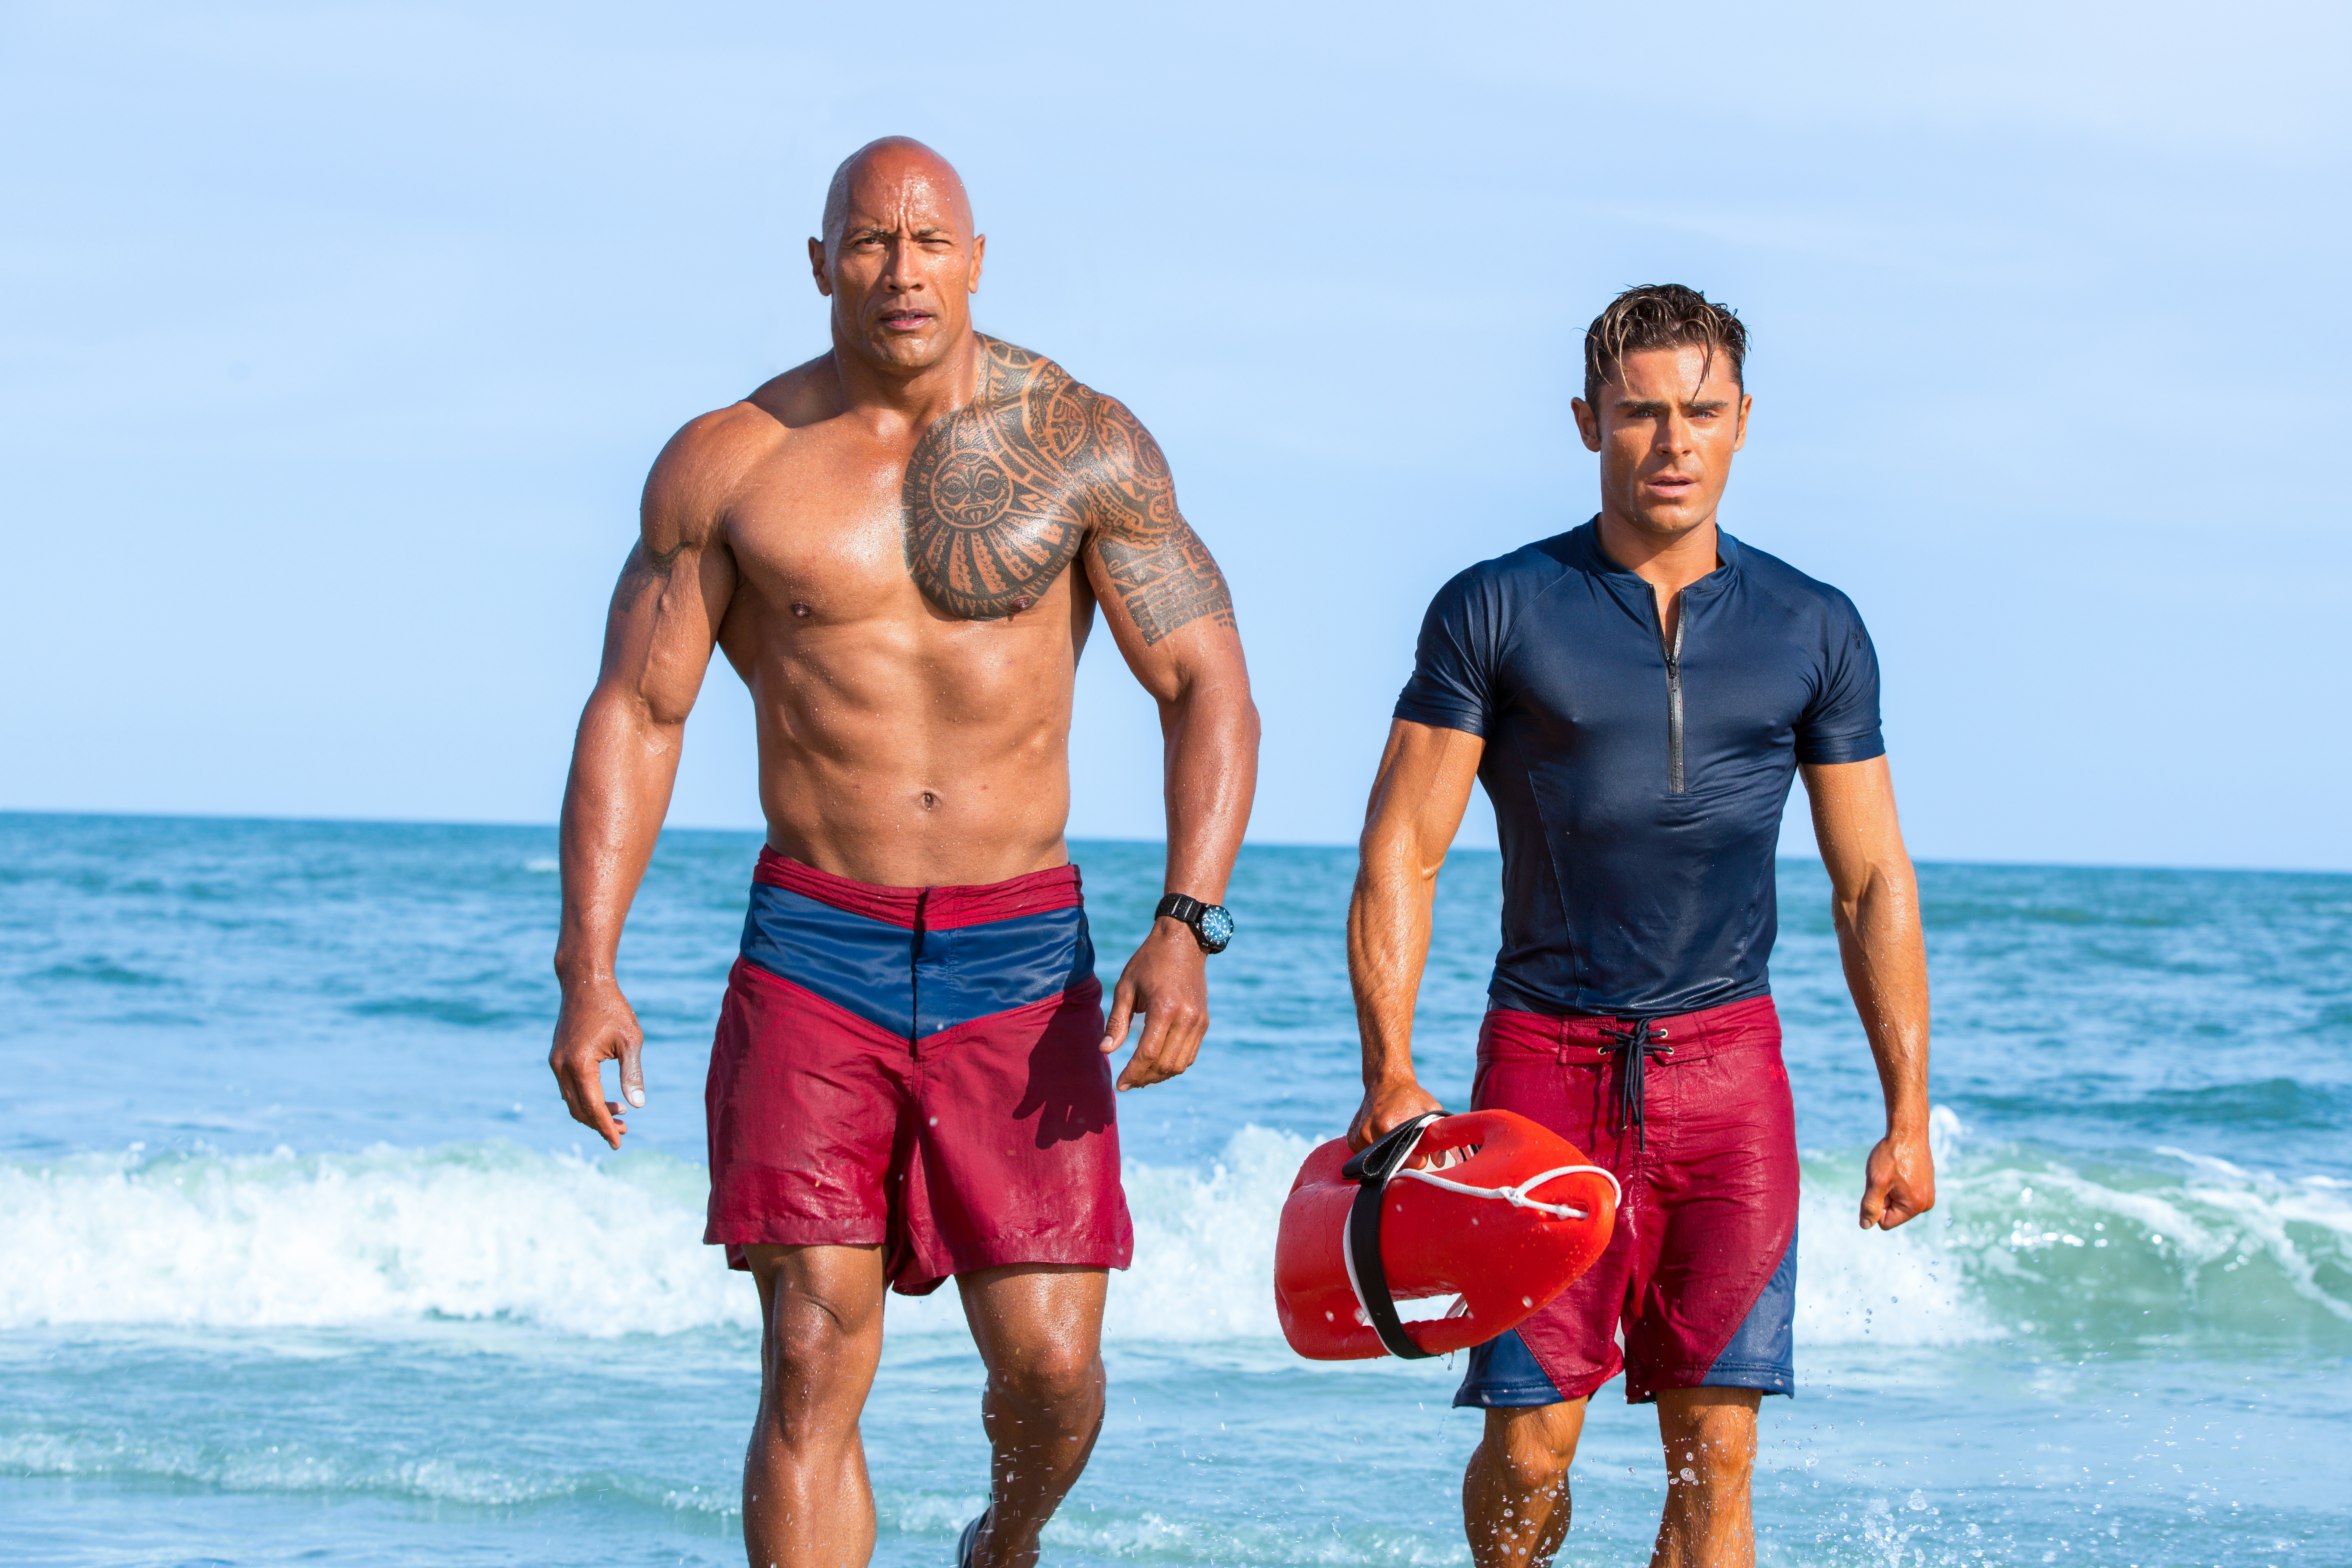 (L-R) Dwayne Johnson as Mitch Buchannon and Zac Efron as Matt Brody in BAYWATCH by Paramount Pictures, Montecito Picture Company, FlynnPicture Co., and Fremantle Productions